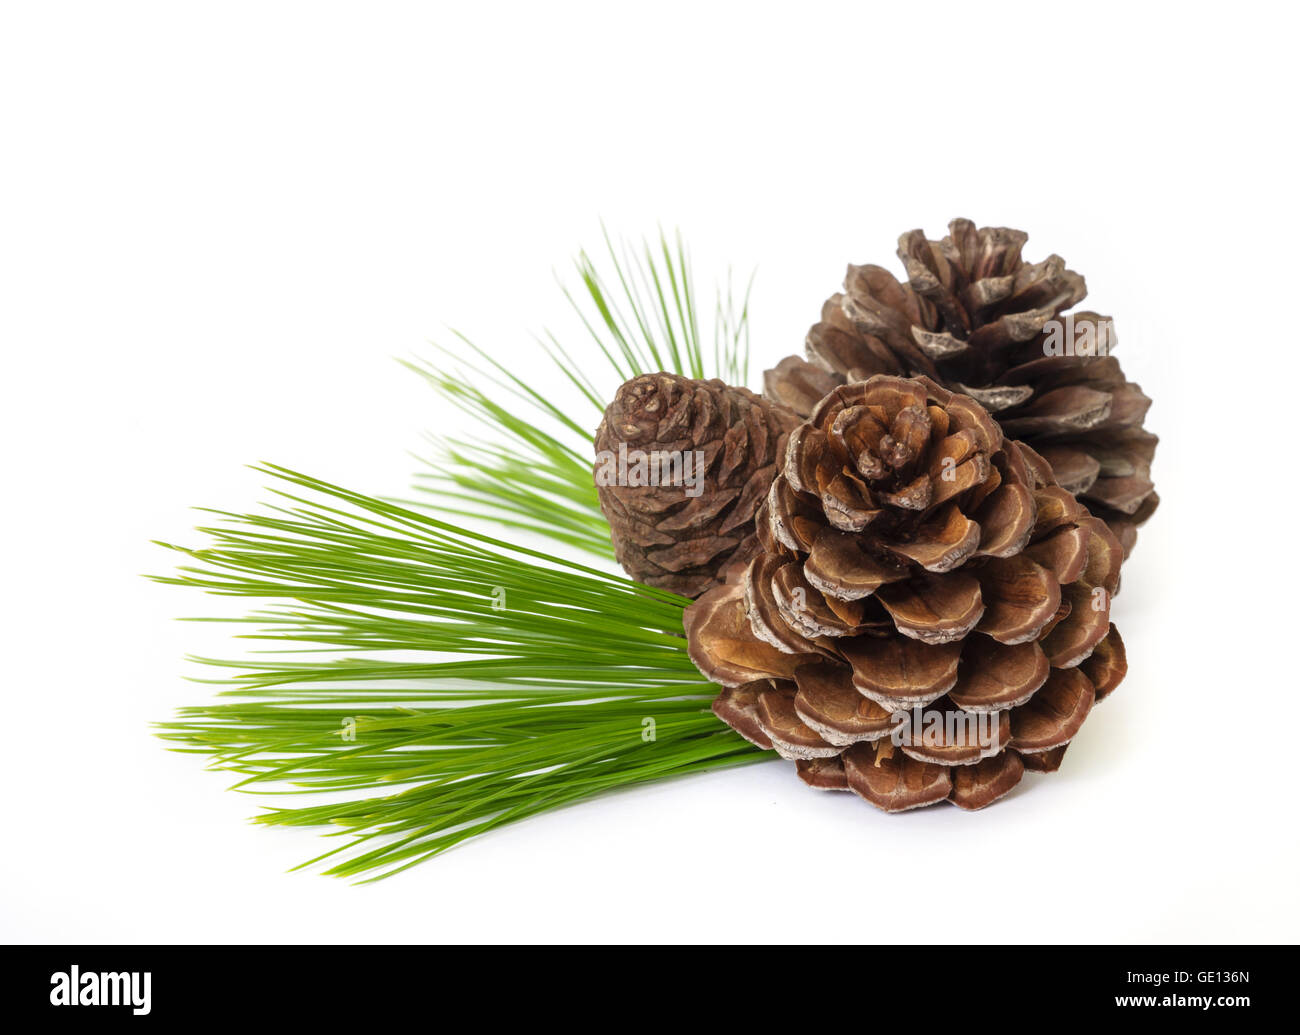 Pine cones with  branches isolated on white background. - Stock Image